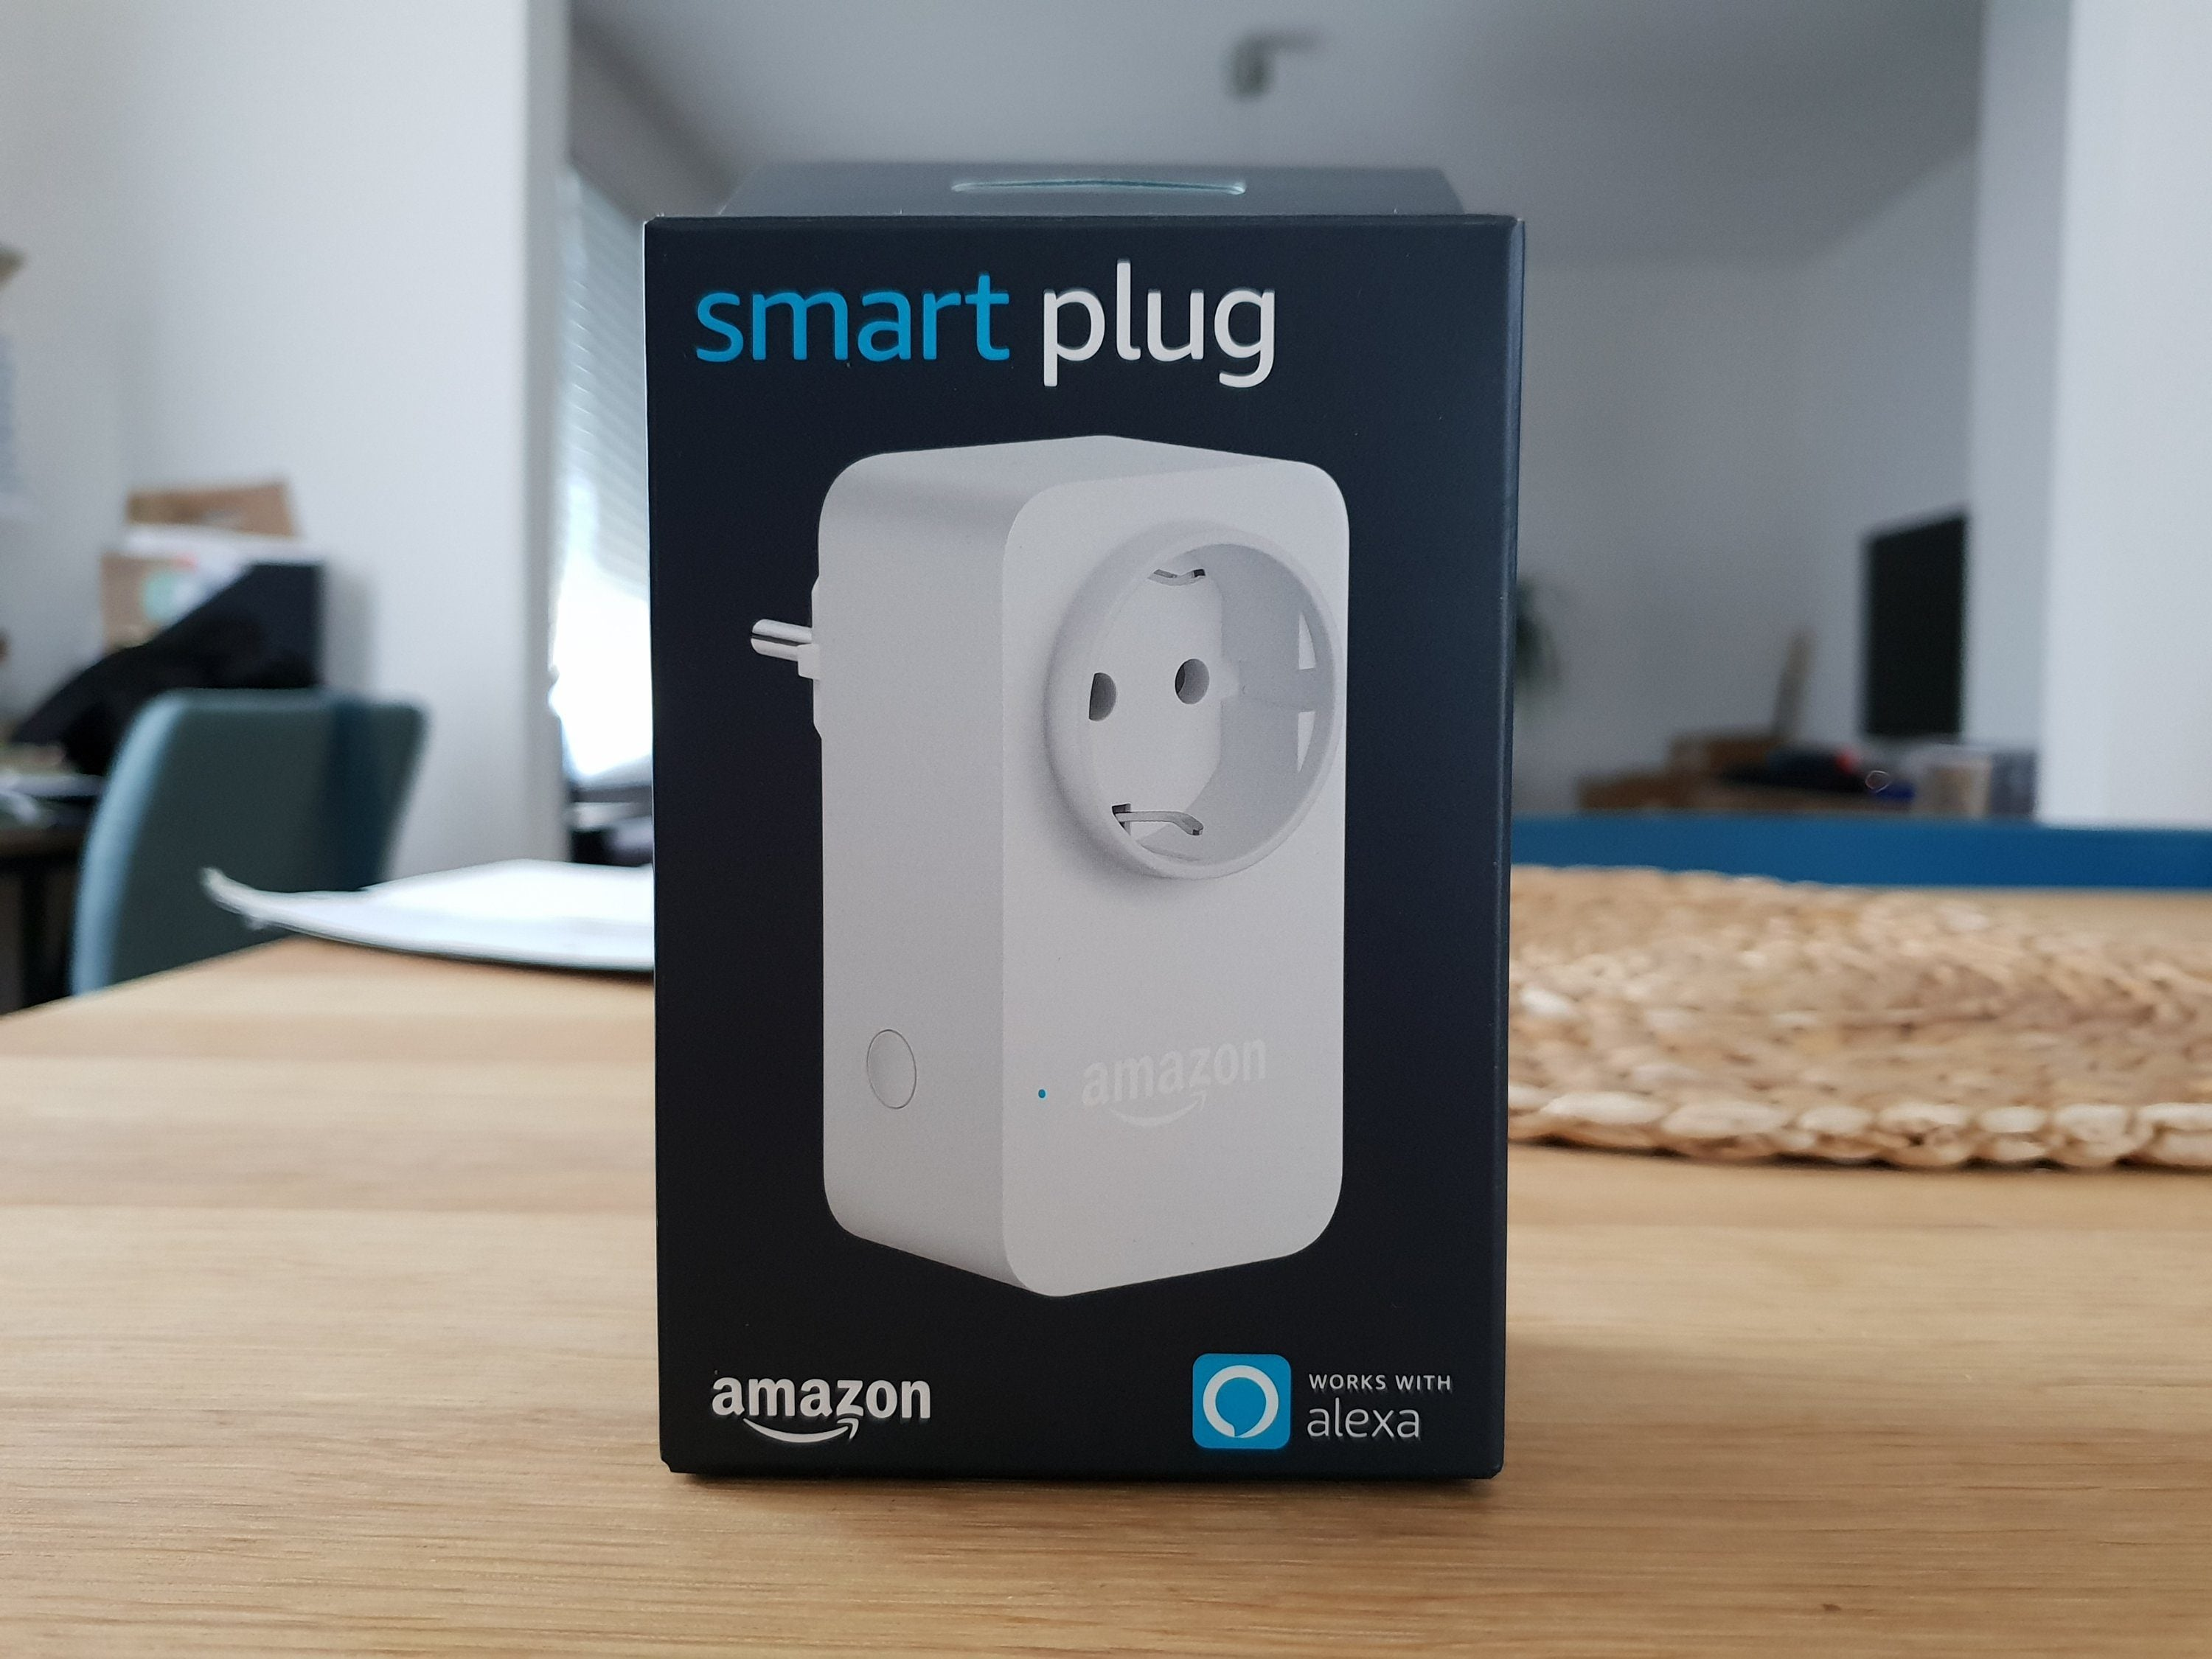 Amazon Smart Plug WLAN-Steckdose im Test 4